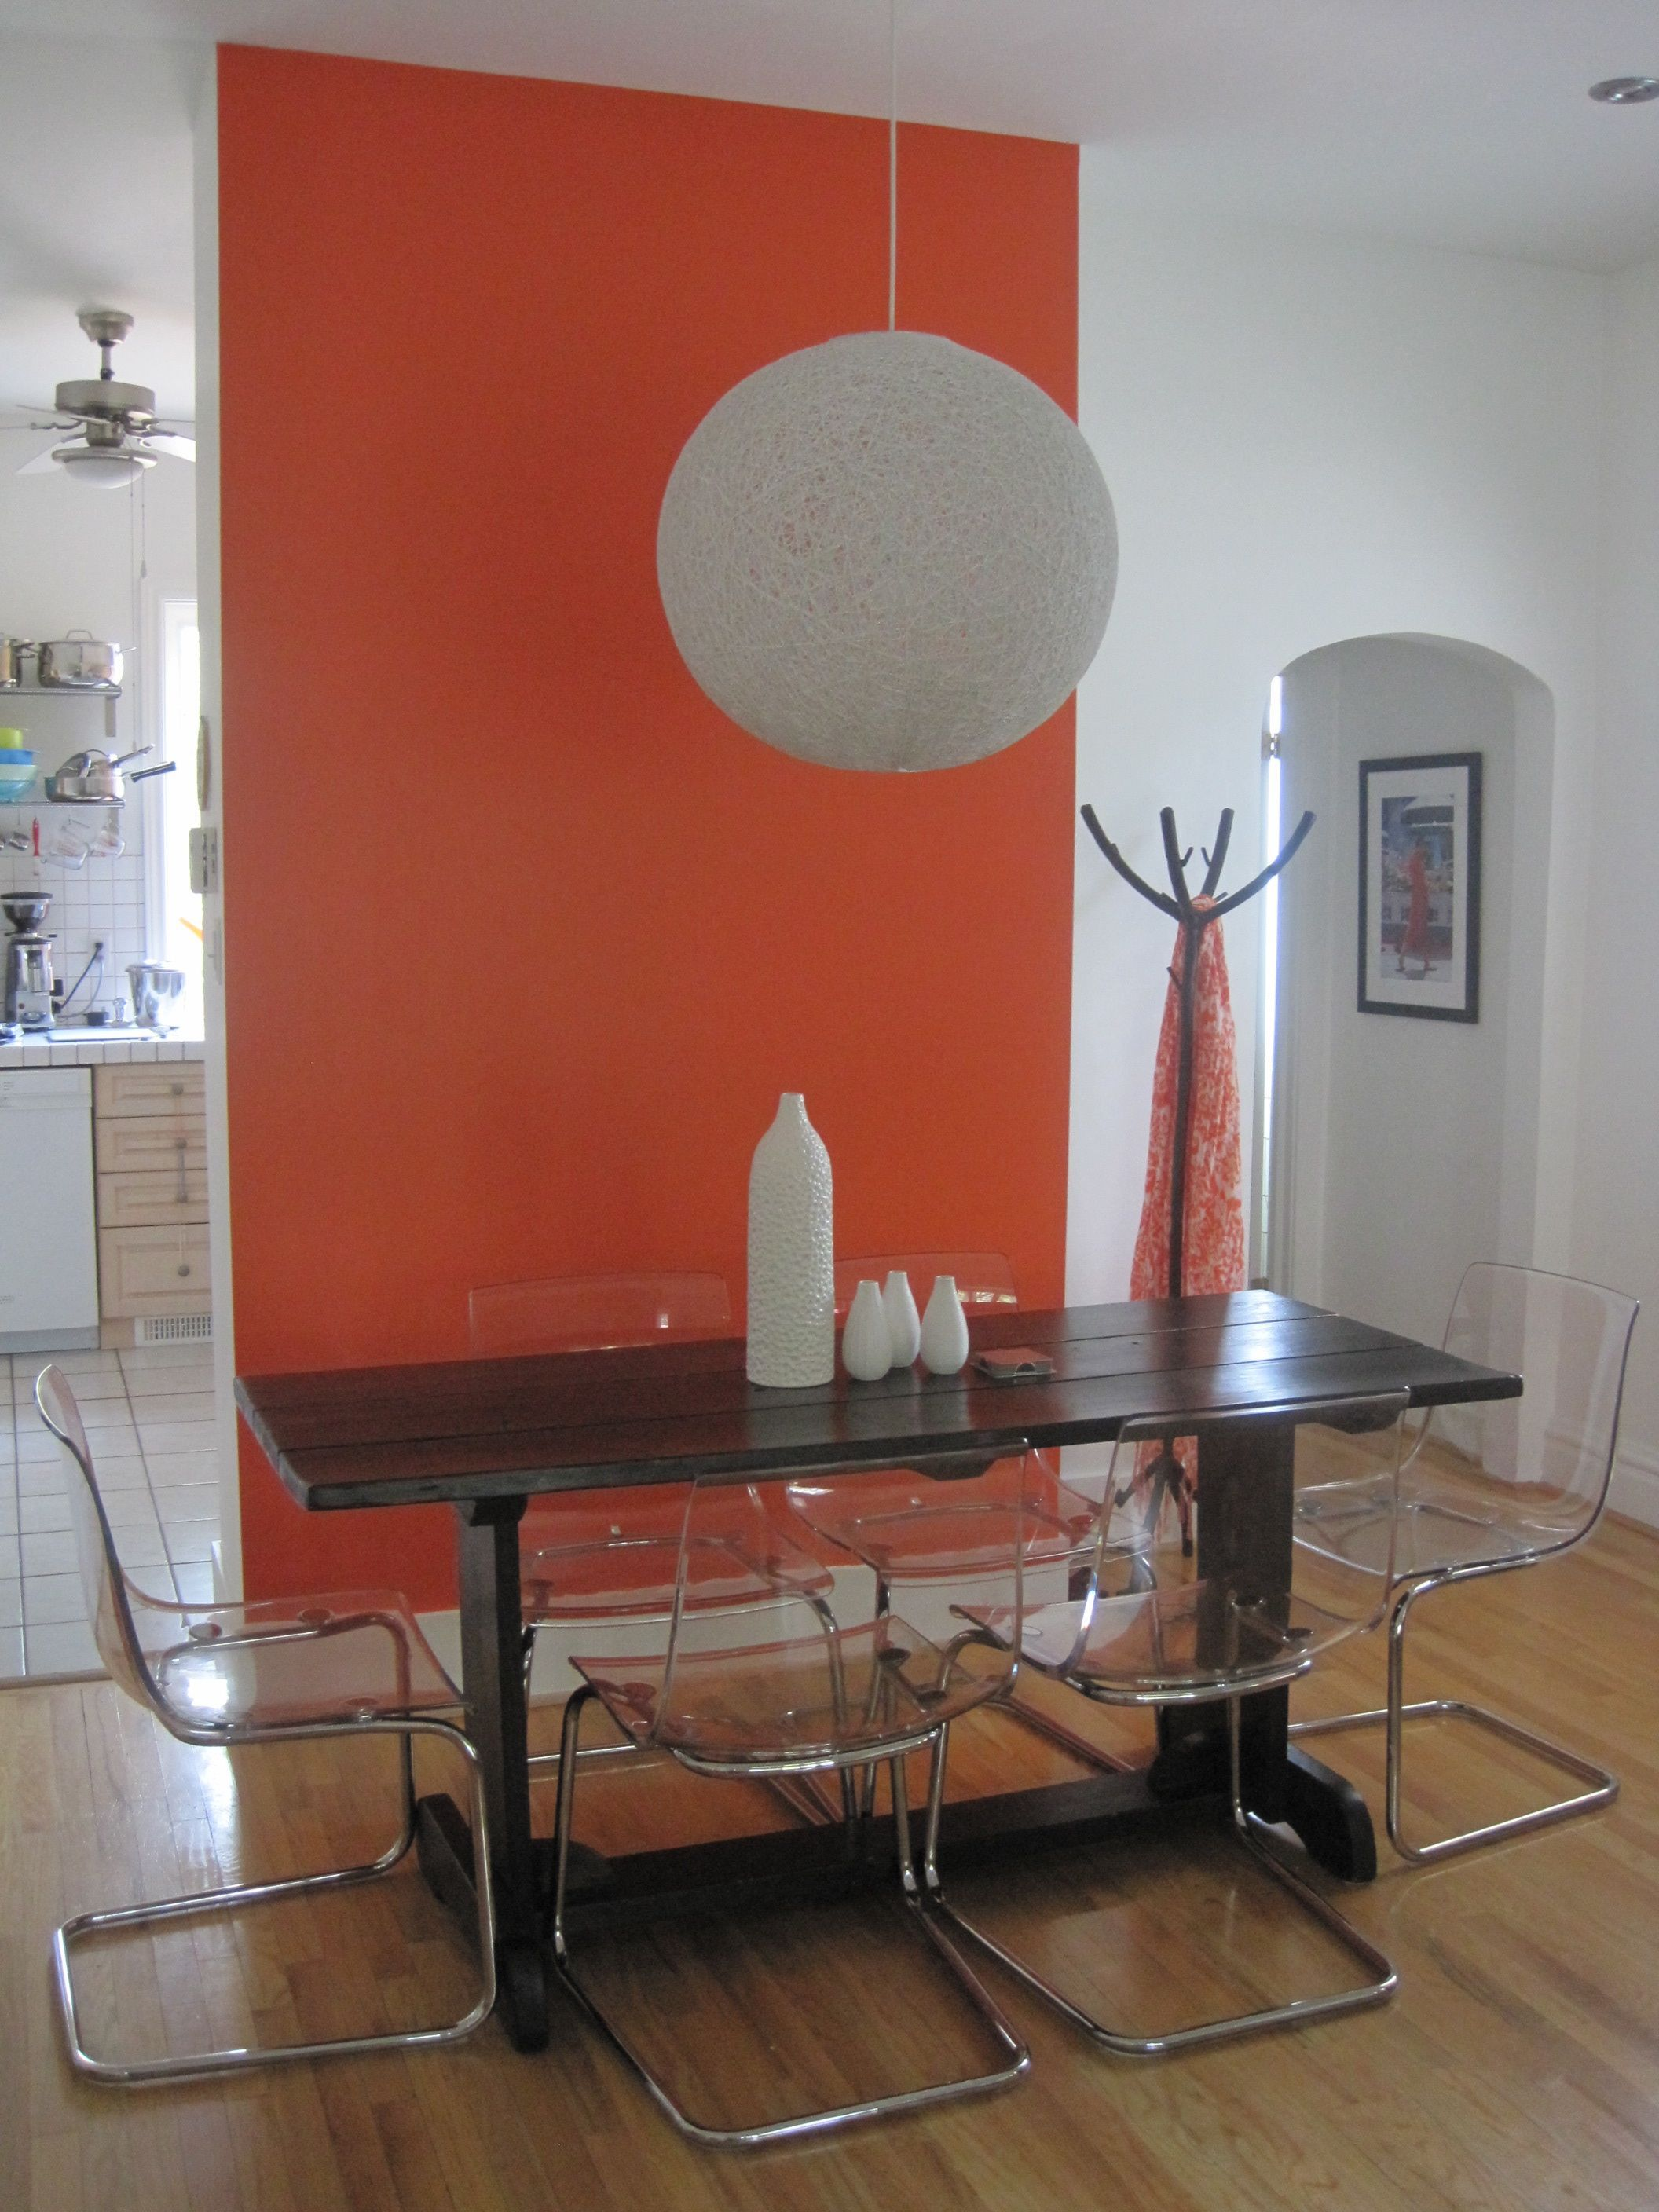 {Statement Wall  Orange}My Son, Before He Moved Out, Chose